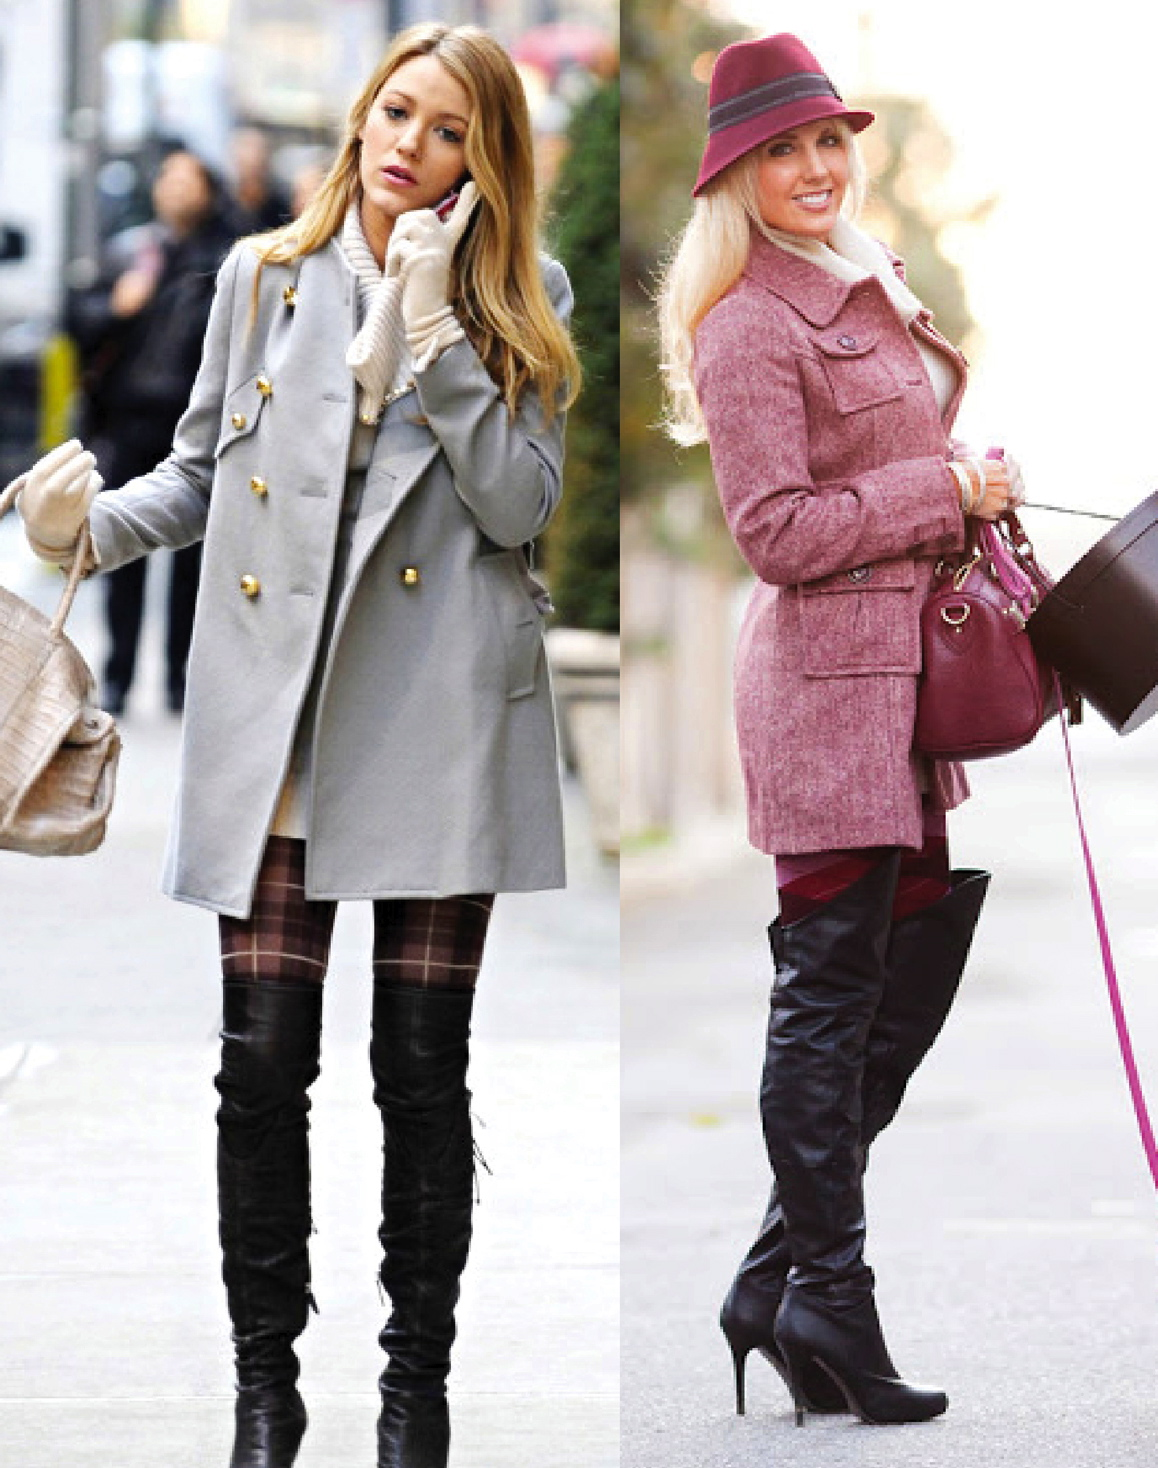 http://2.bp.blogspot.com/-RelX8ntZHyk/UDw7mwxUyOI/AAAAAAAADwg/vWkHe6oM4wk/s1600/Blake+Lively+in+NYC+for+Gossip+Girl+over+the+knee+boots,+Dale+Steliga,+Savvy+Spice+fashion+blog.jpeg